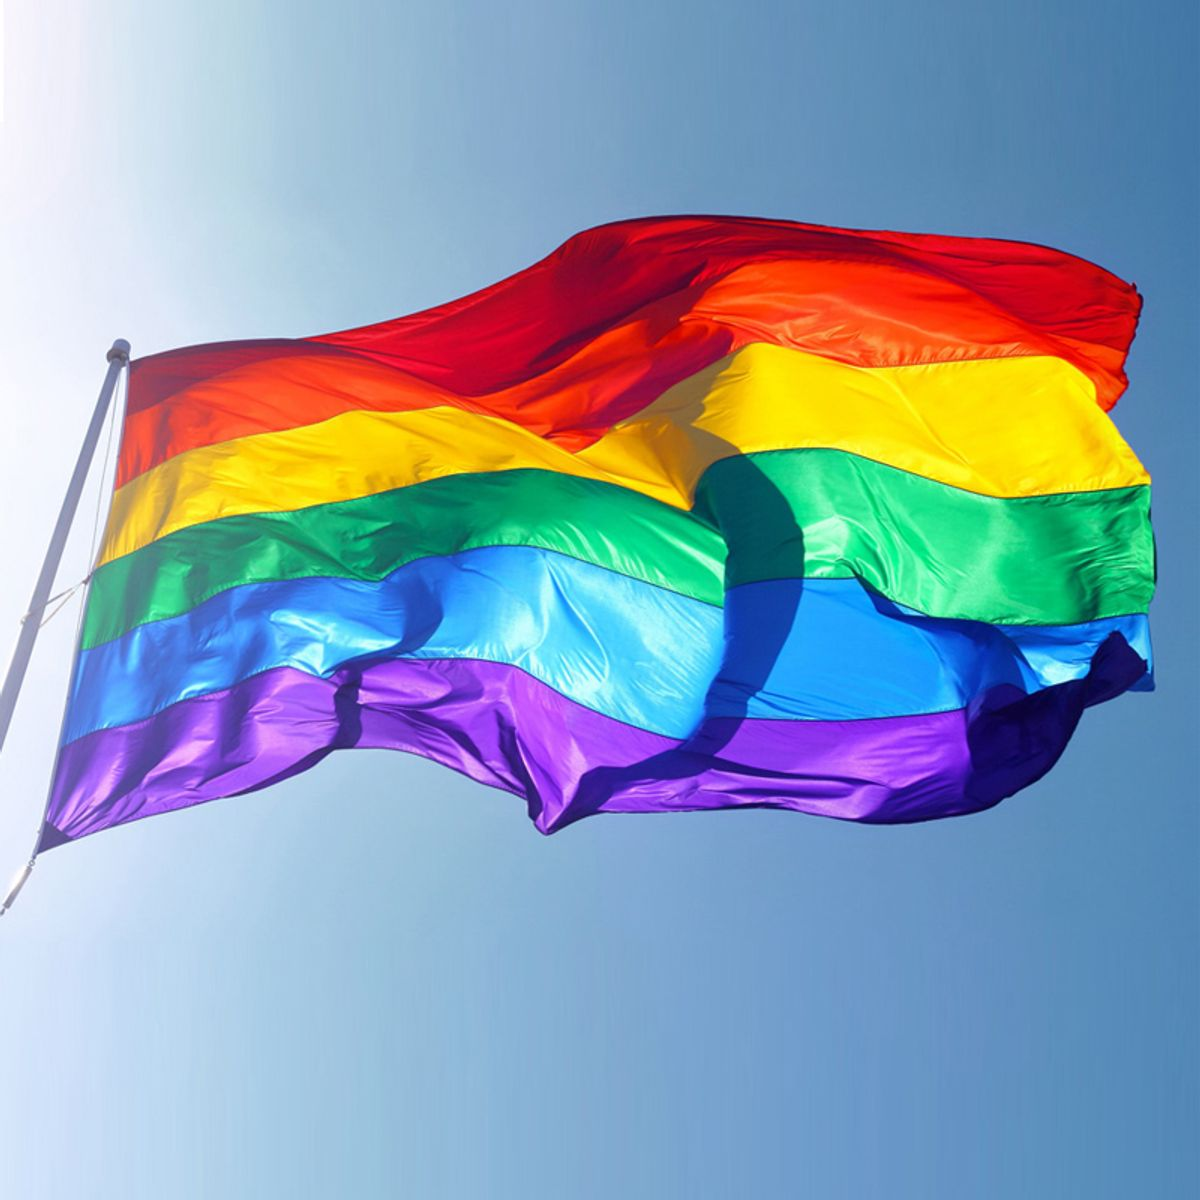 Thoughts On Living With LGBTQIA+ Marginalization